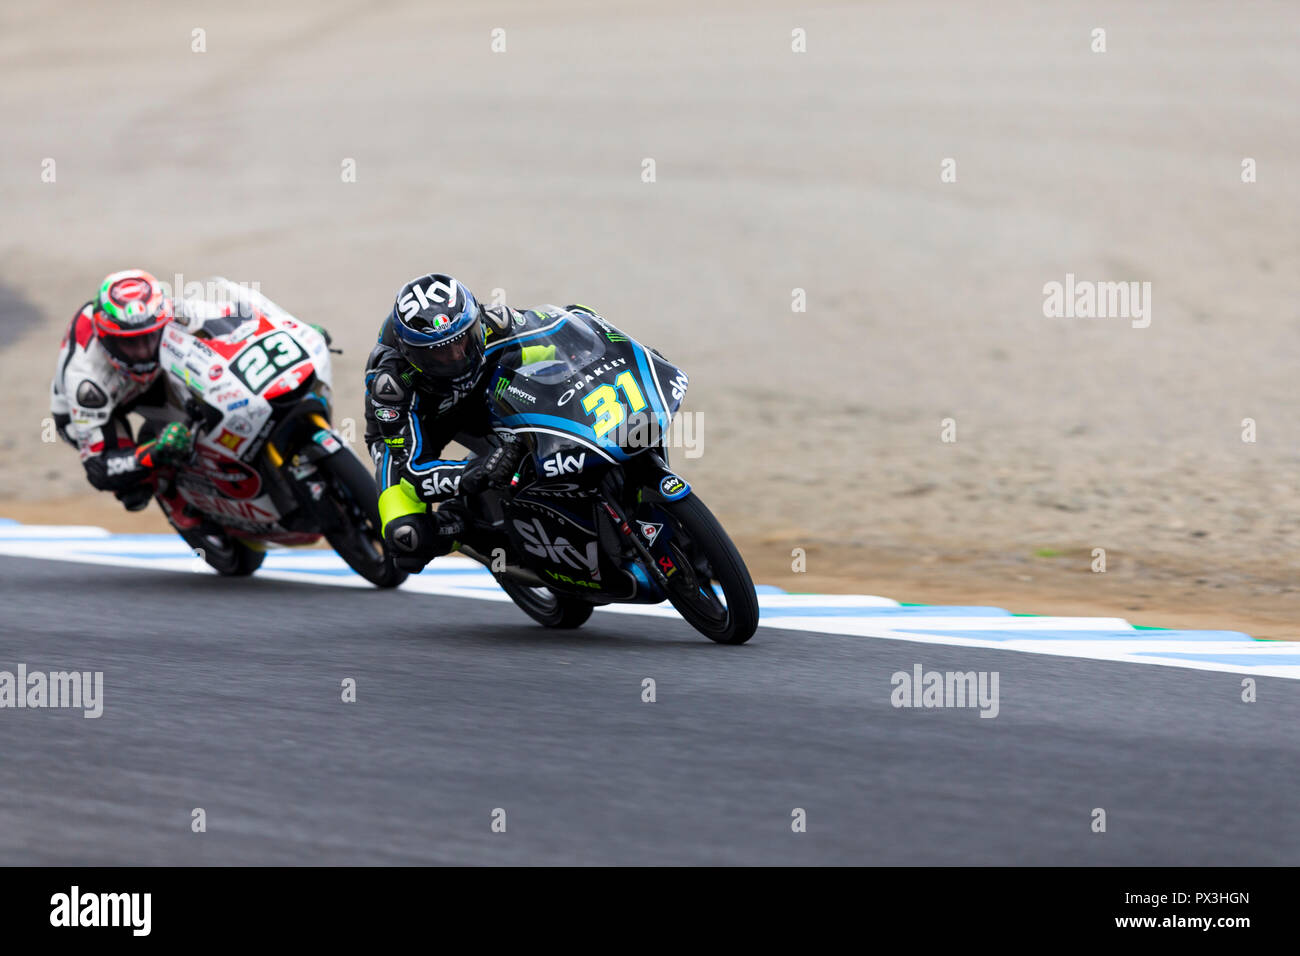 Twin Ring Motegi, Motegi, Japan. 19th Oct, 2018. MotoGP of Japan, Friday free practice; Celestine Vietti and Fabio Di Giannantonio during Moto3 Free Practice 2 Credit: Action Plus Sports/Alamy Live News - Stock Image